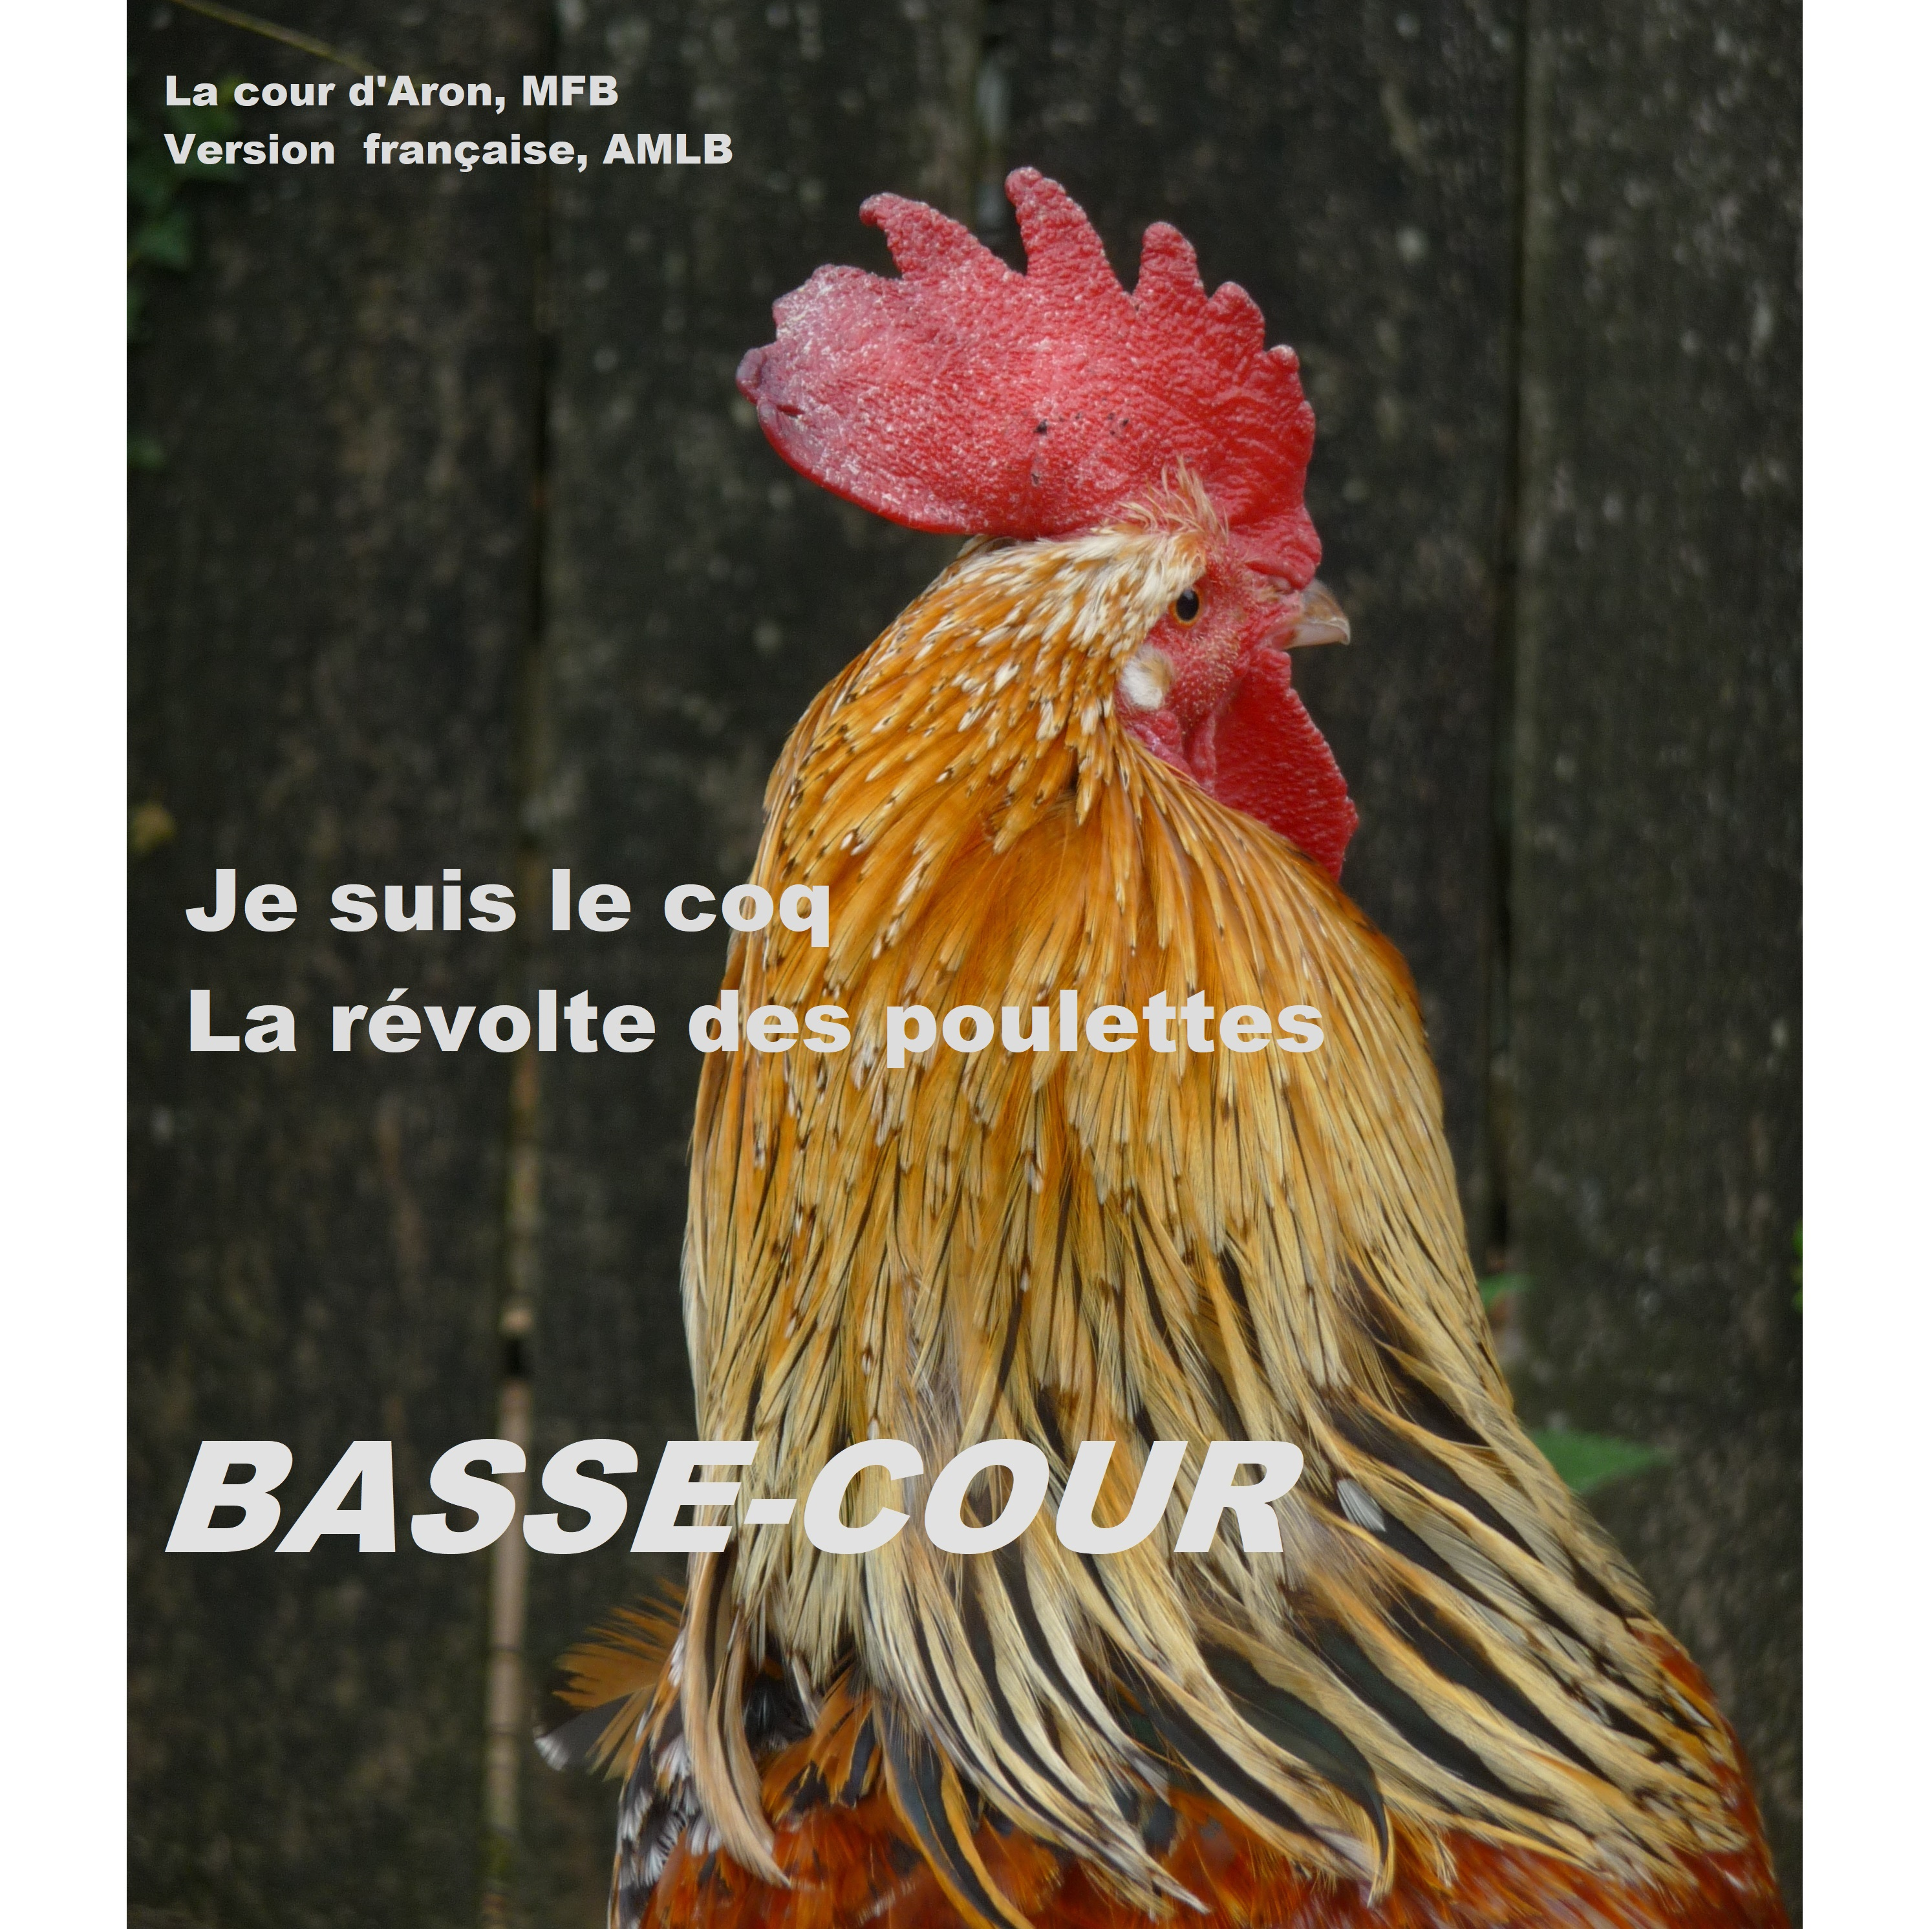 Basse cour